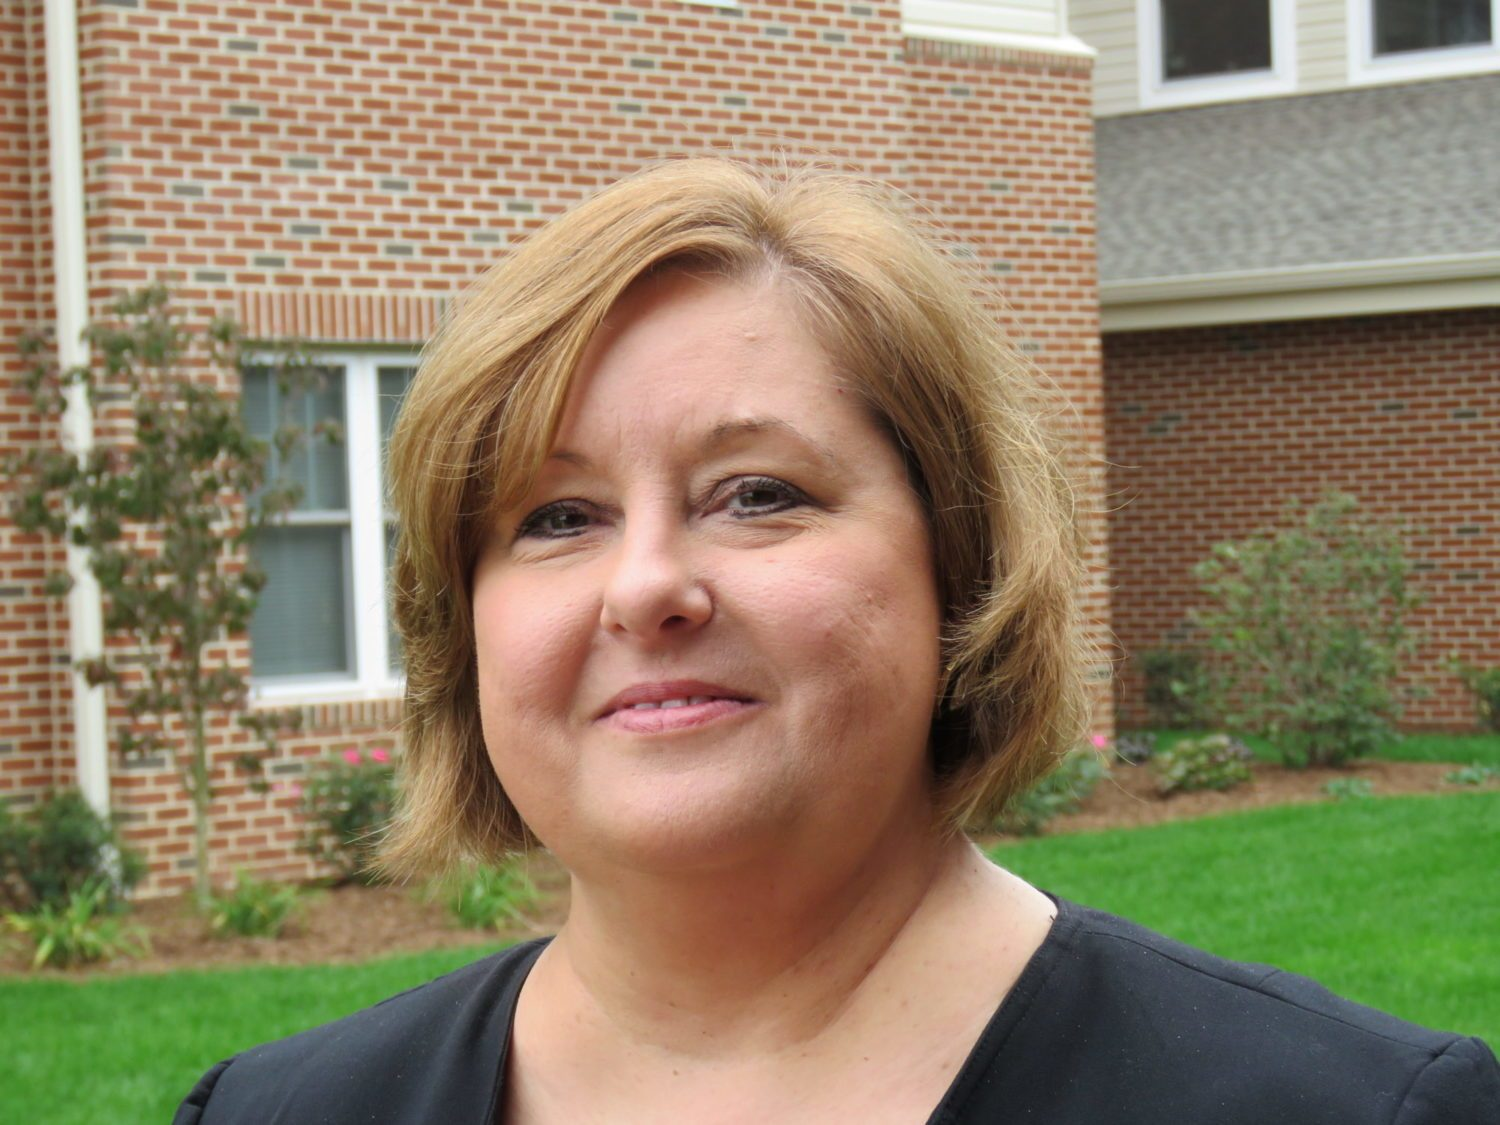 Experienced Nursing Home Administrator Joins UZRC